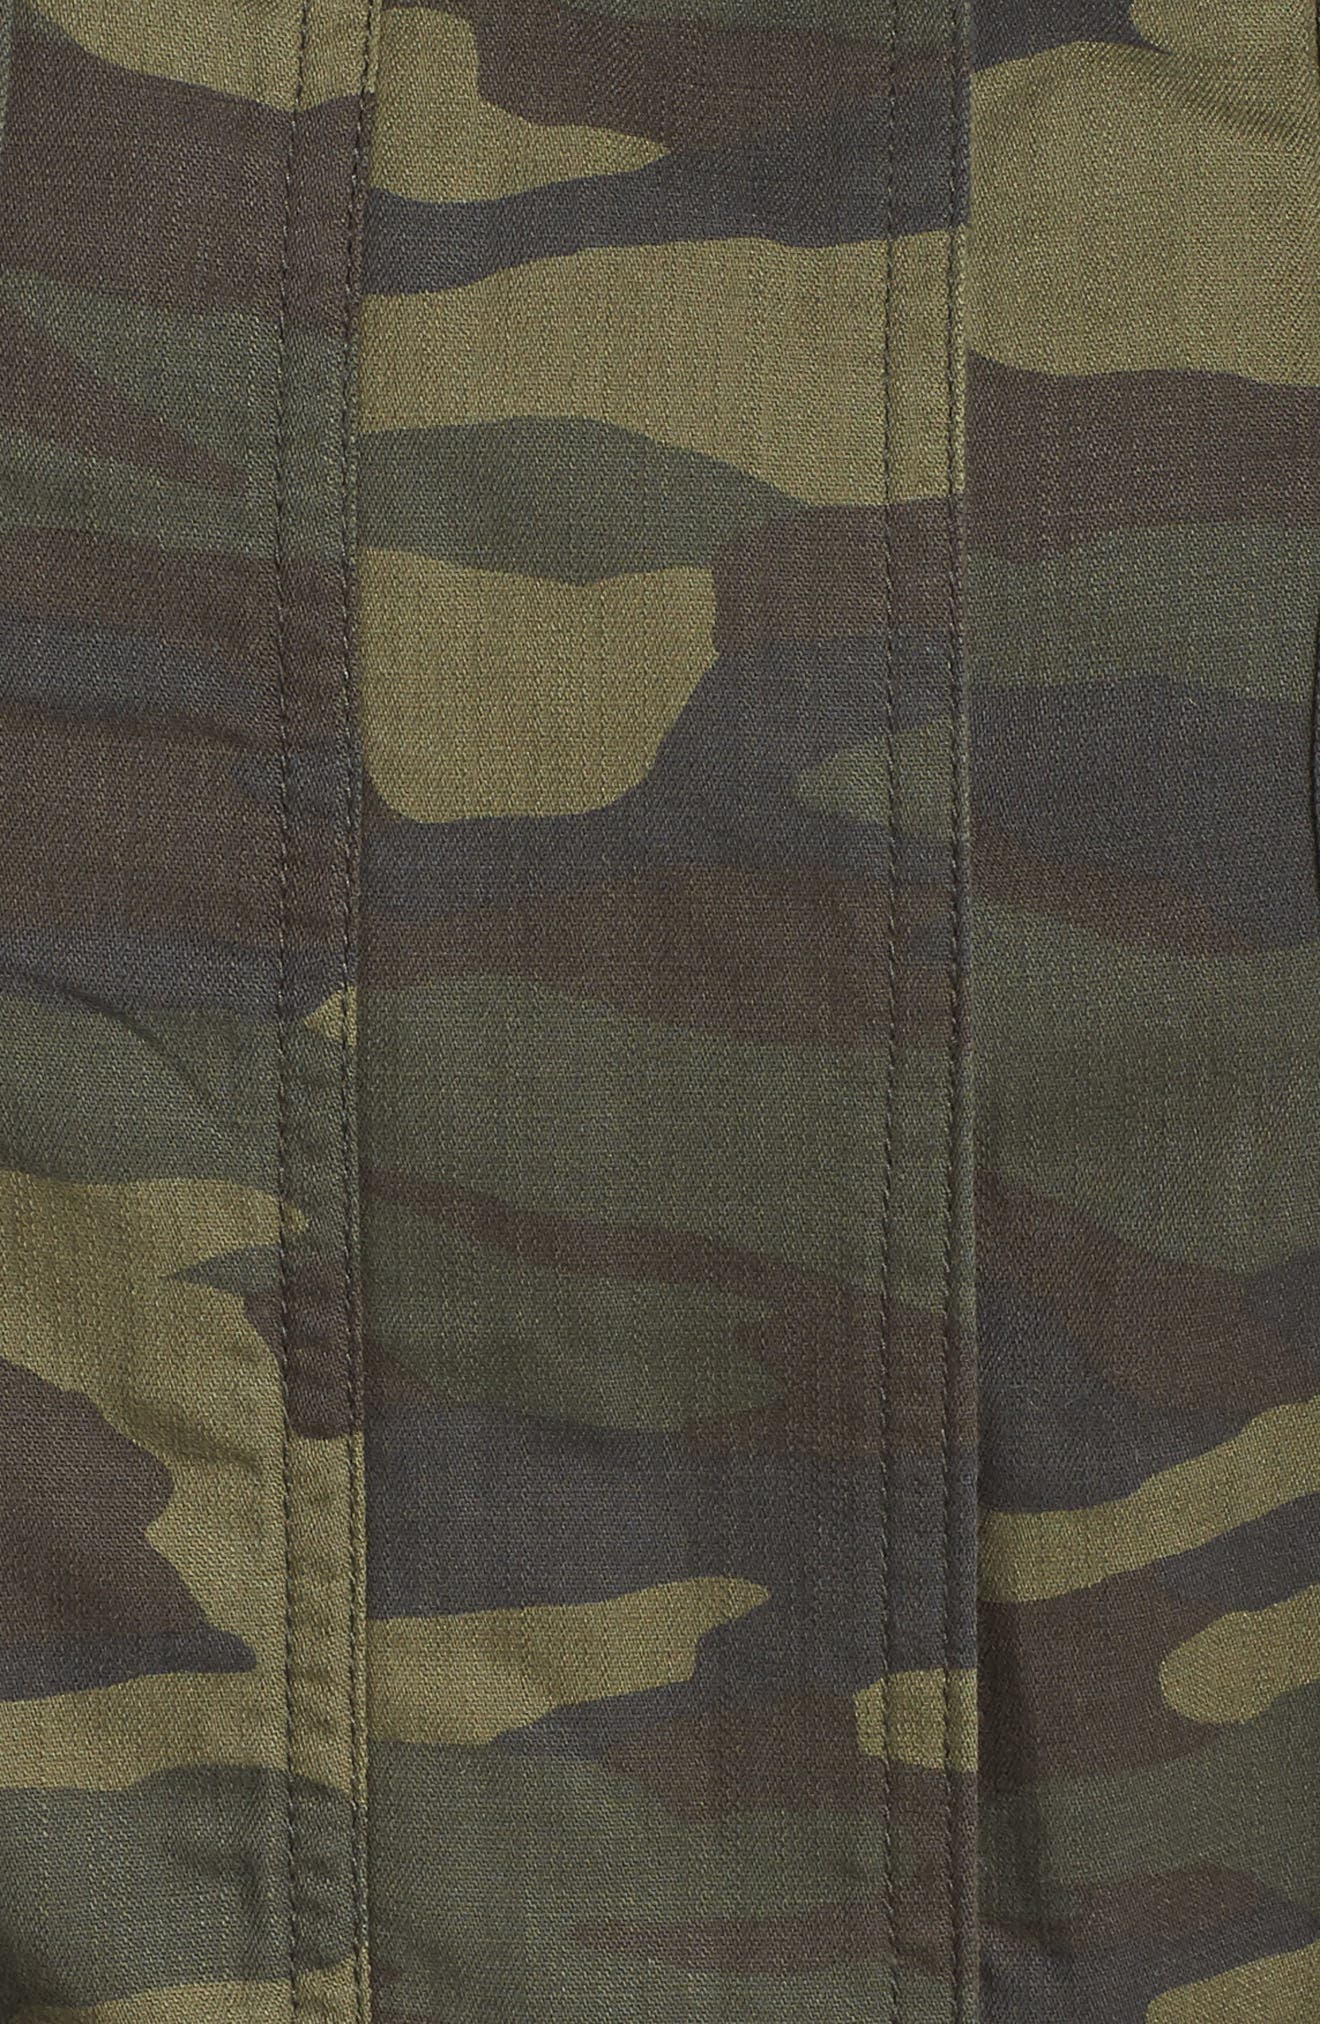 Utility Vest,                             Alternate thumbnail 7, color,                             OLIVE LG CAMO PRT